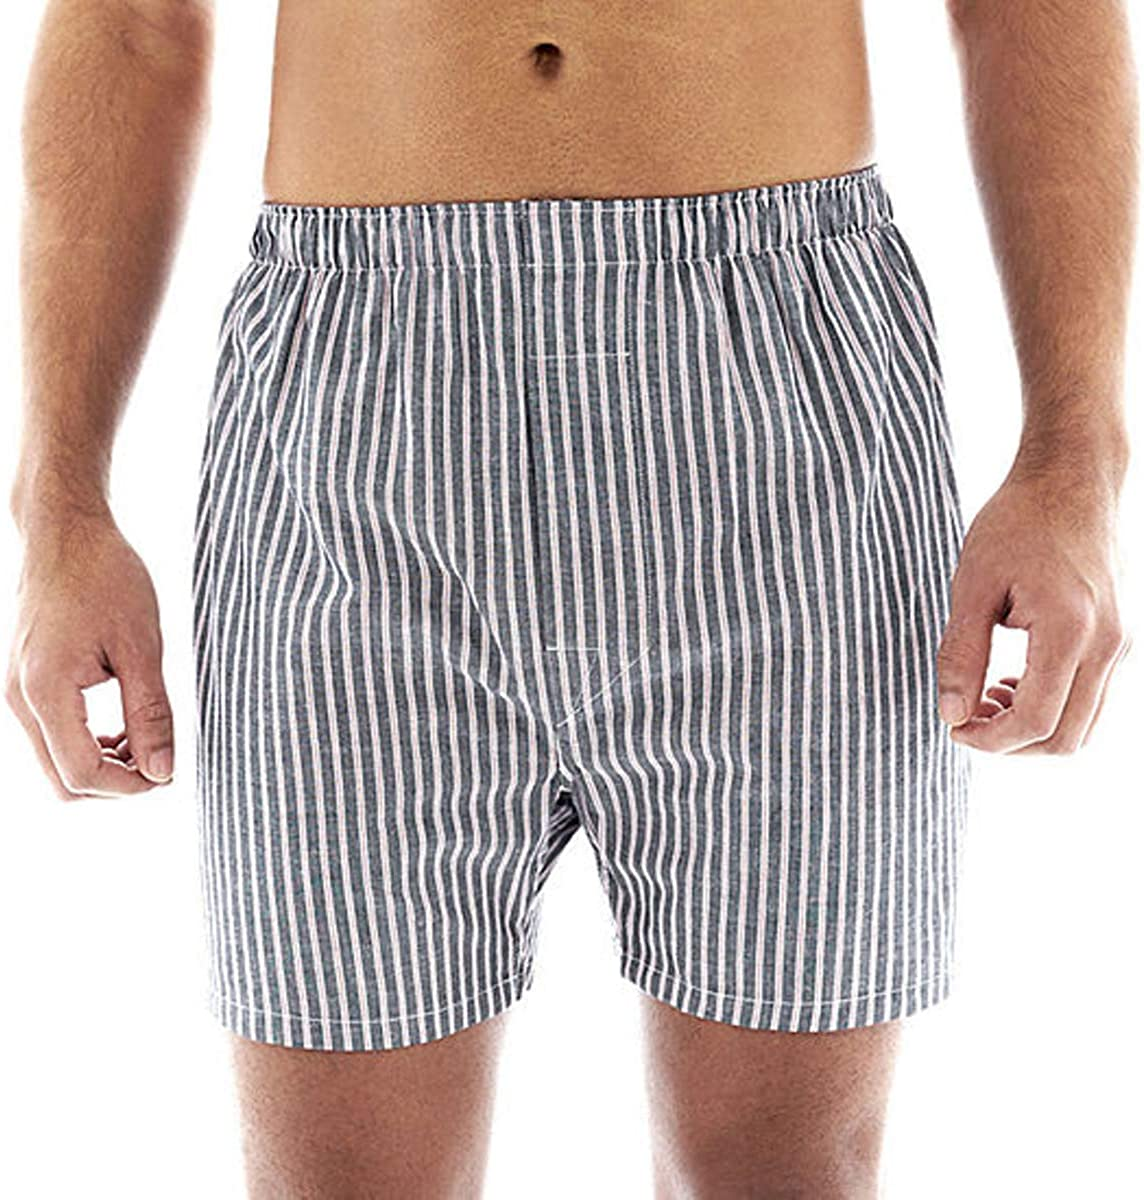 Stafford Max 43% OFF 4 Pack Direct sale of manufacturer Woven Boxers Cotton